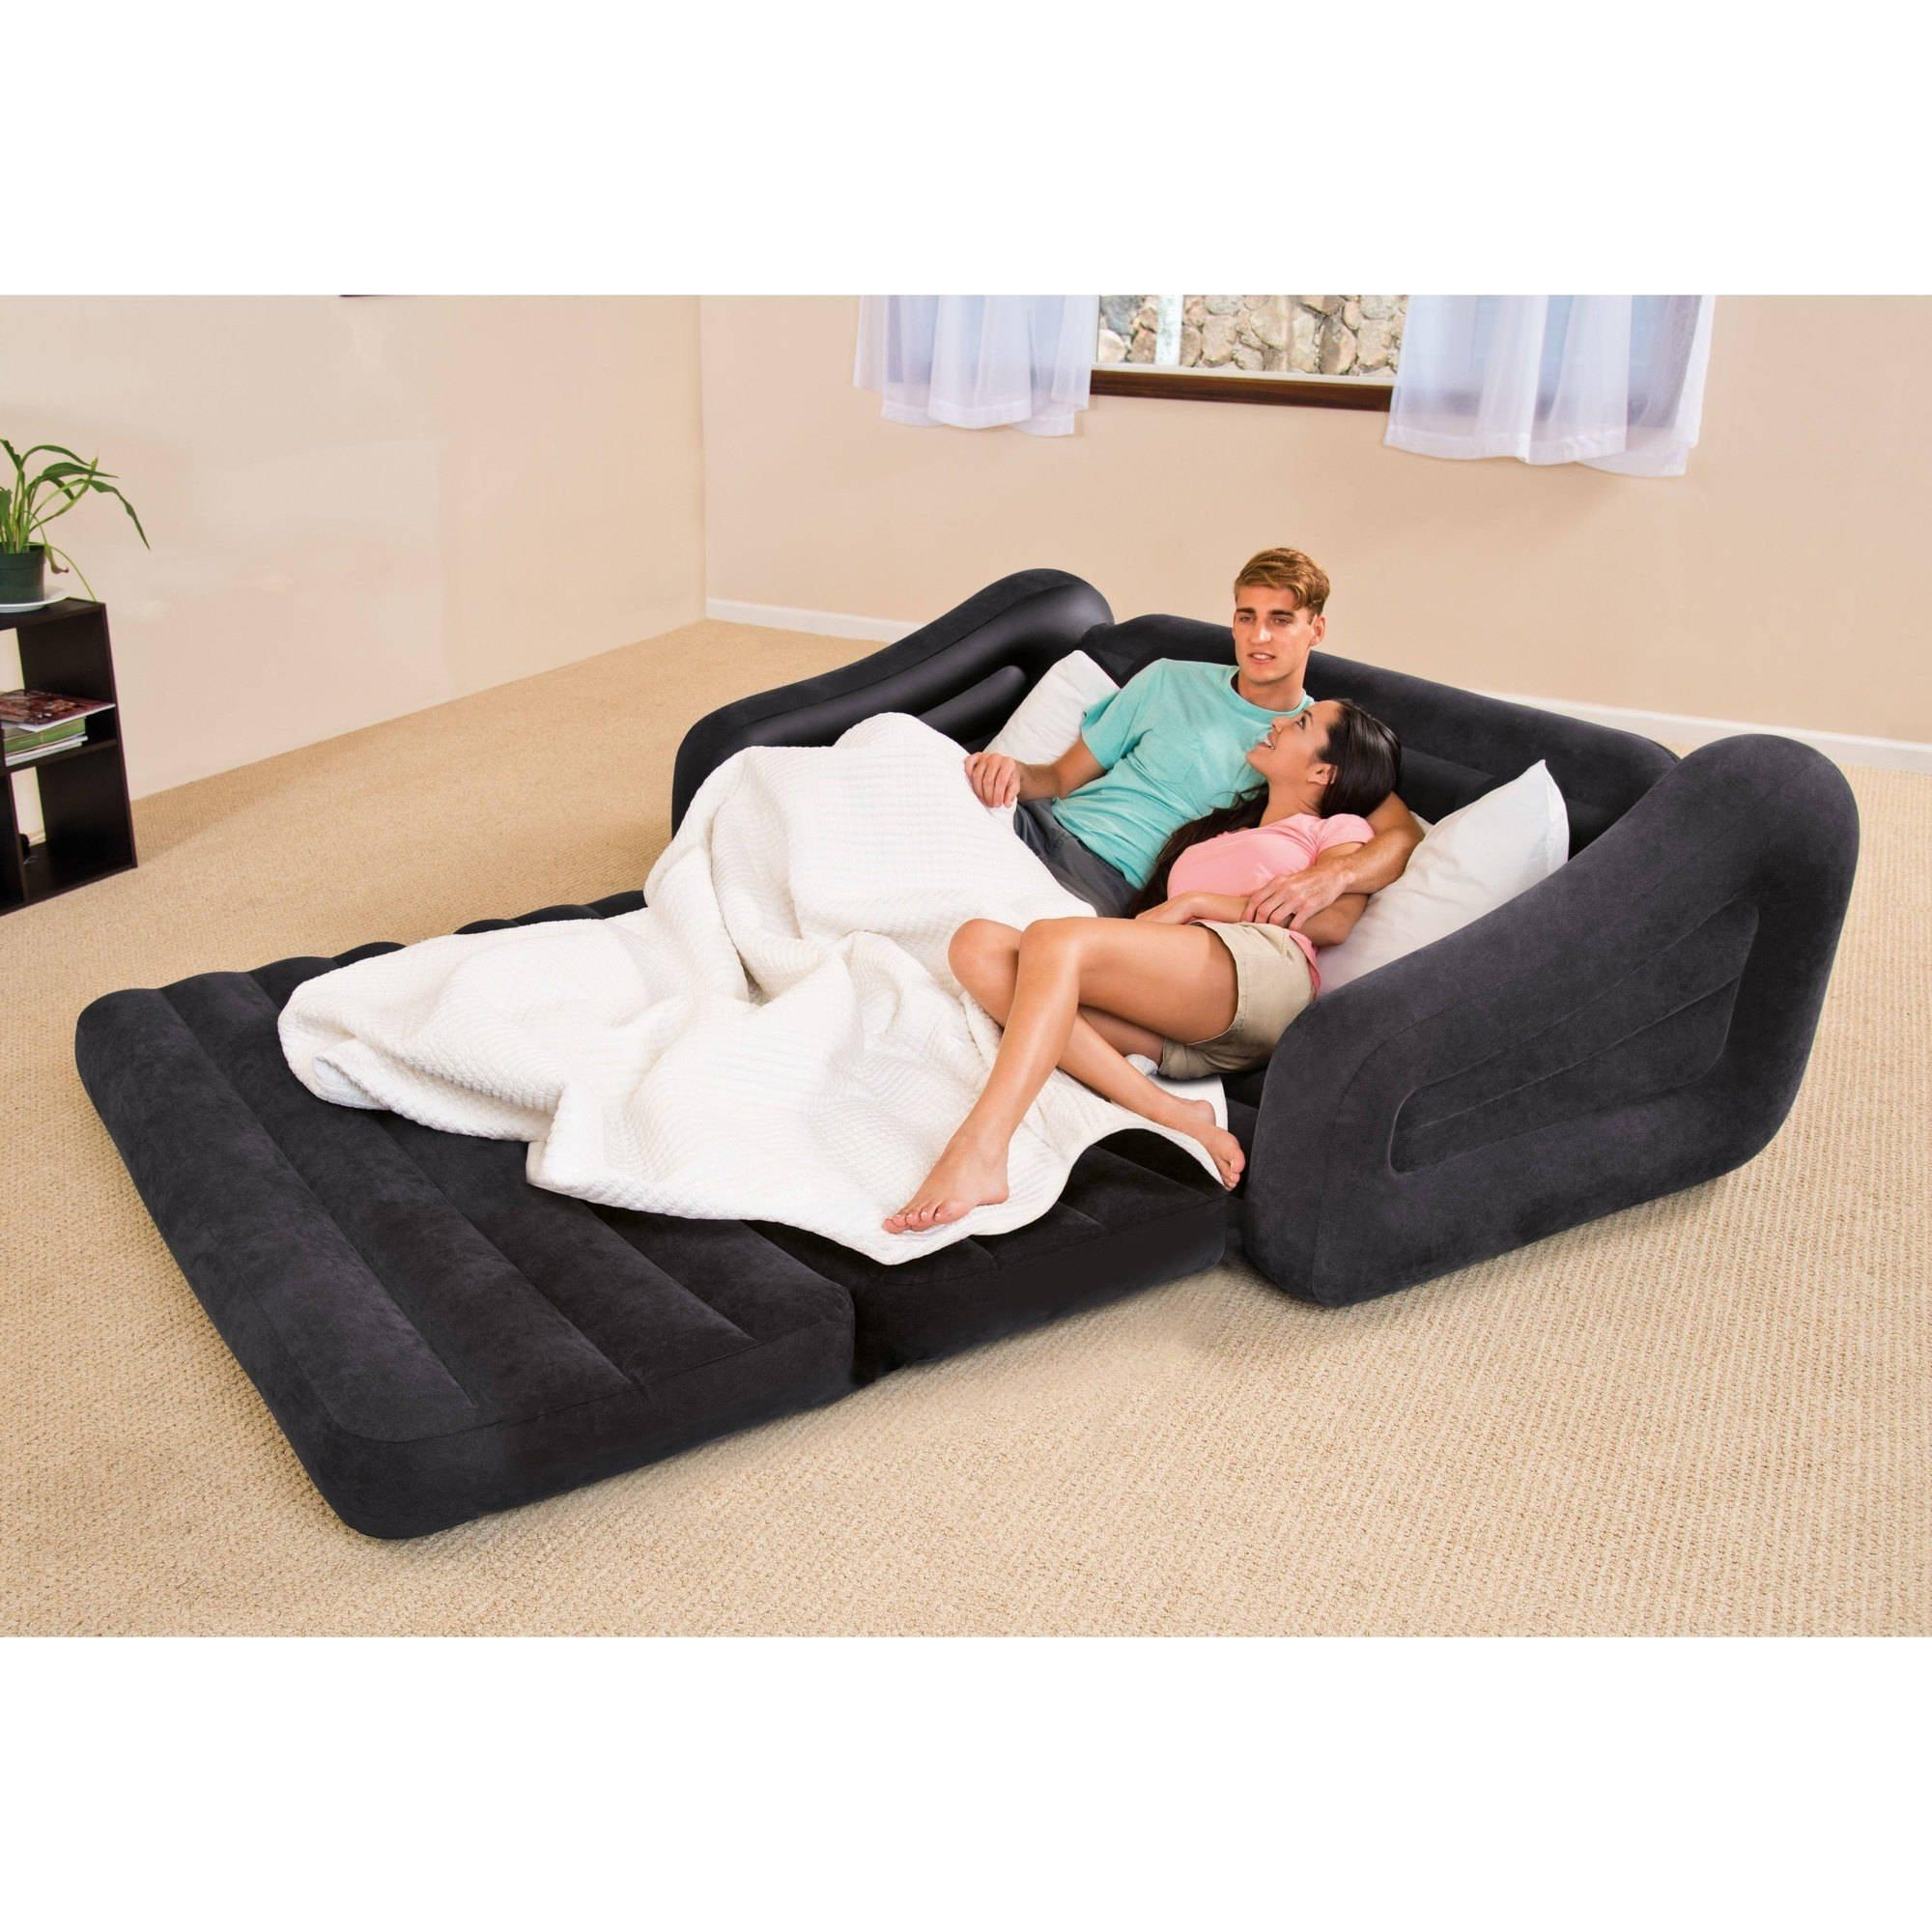 Intex Inflatable Pull Out Sofa Queen Mattress Sleeper With Concept Inside Intex Queen Sleeper Sofas (Image 8 of 20)